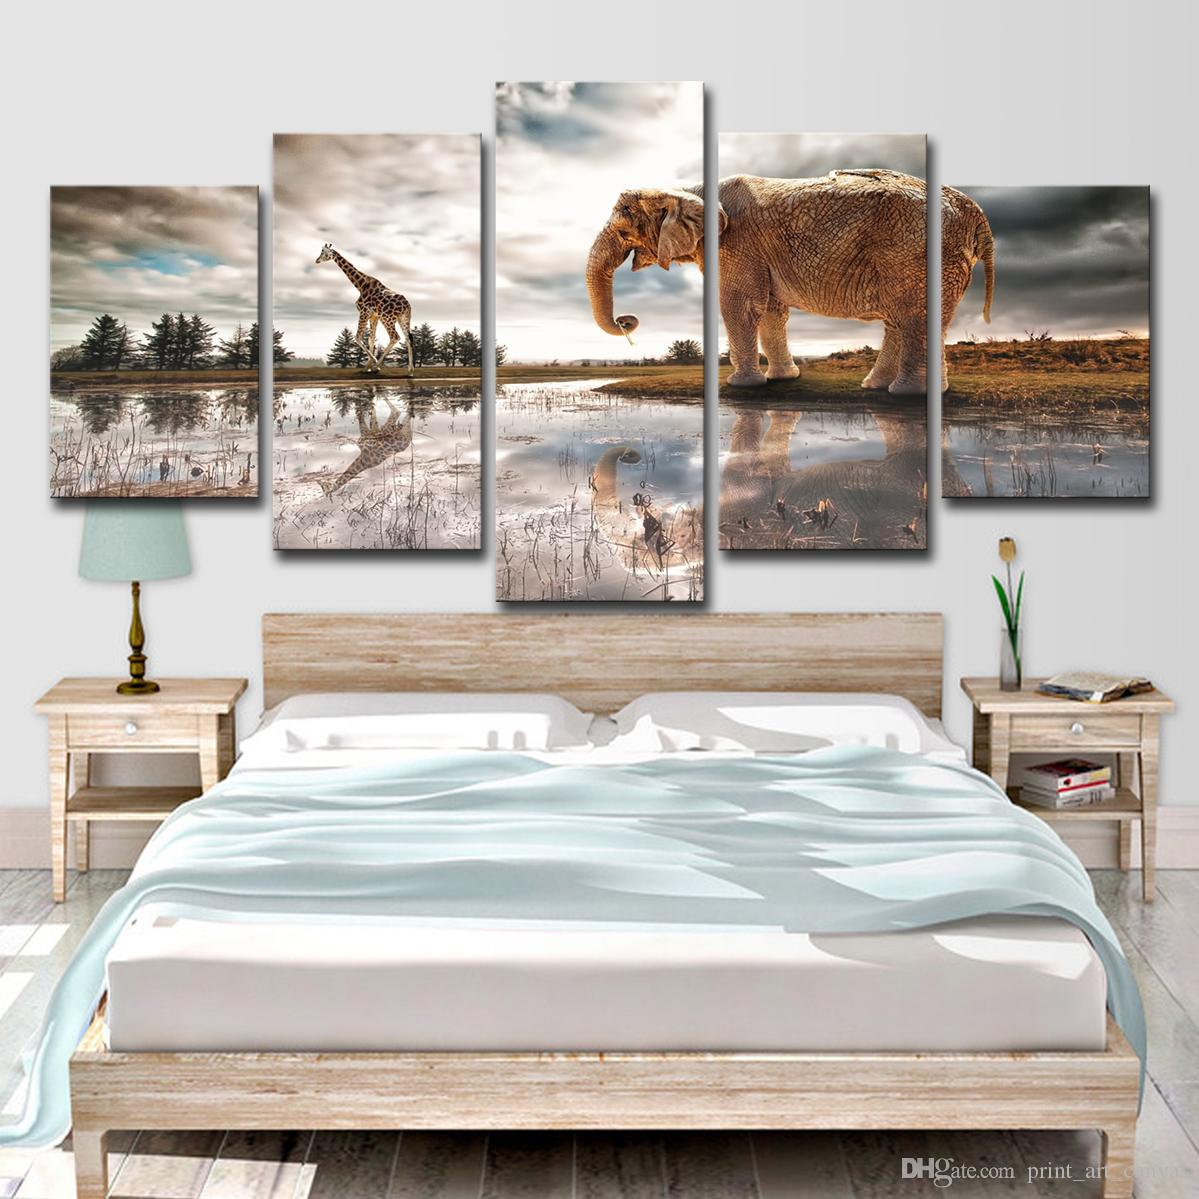 2020 Hd Printed Elephant And Giraffe Painting Canvas Print Room Decor Print Poster Picture Canvas From Print Art Canvas 13 95 Dhgate Com